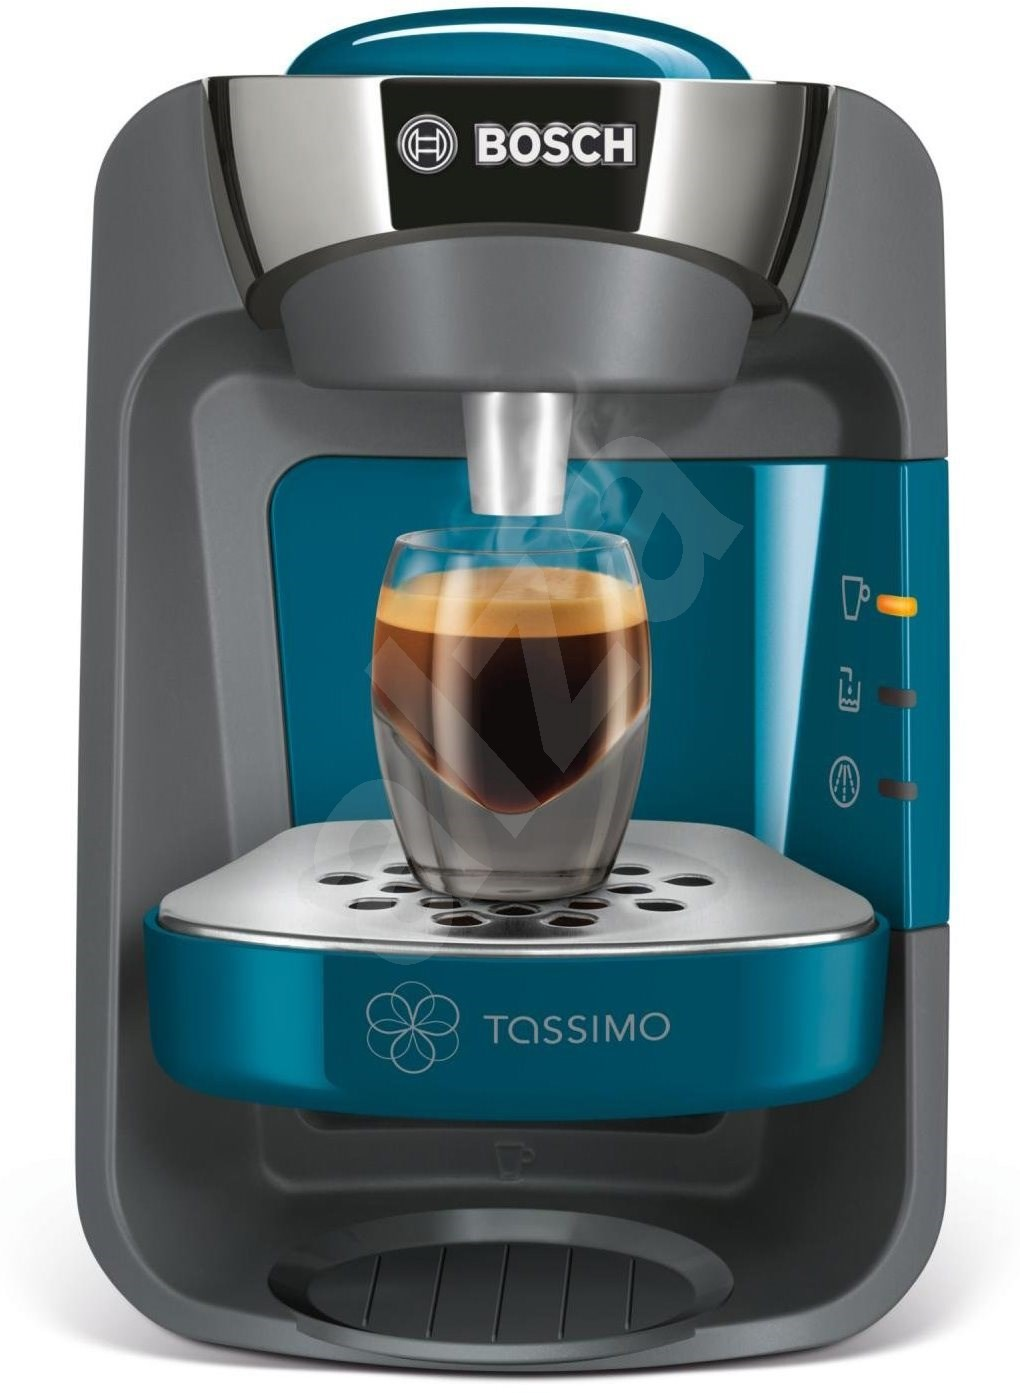 bosch tassimo tas3205 suny kapsel kaffeemaschine. Black Bedroom Furniture Sets. Home Design Ideas